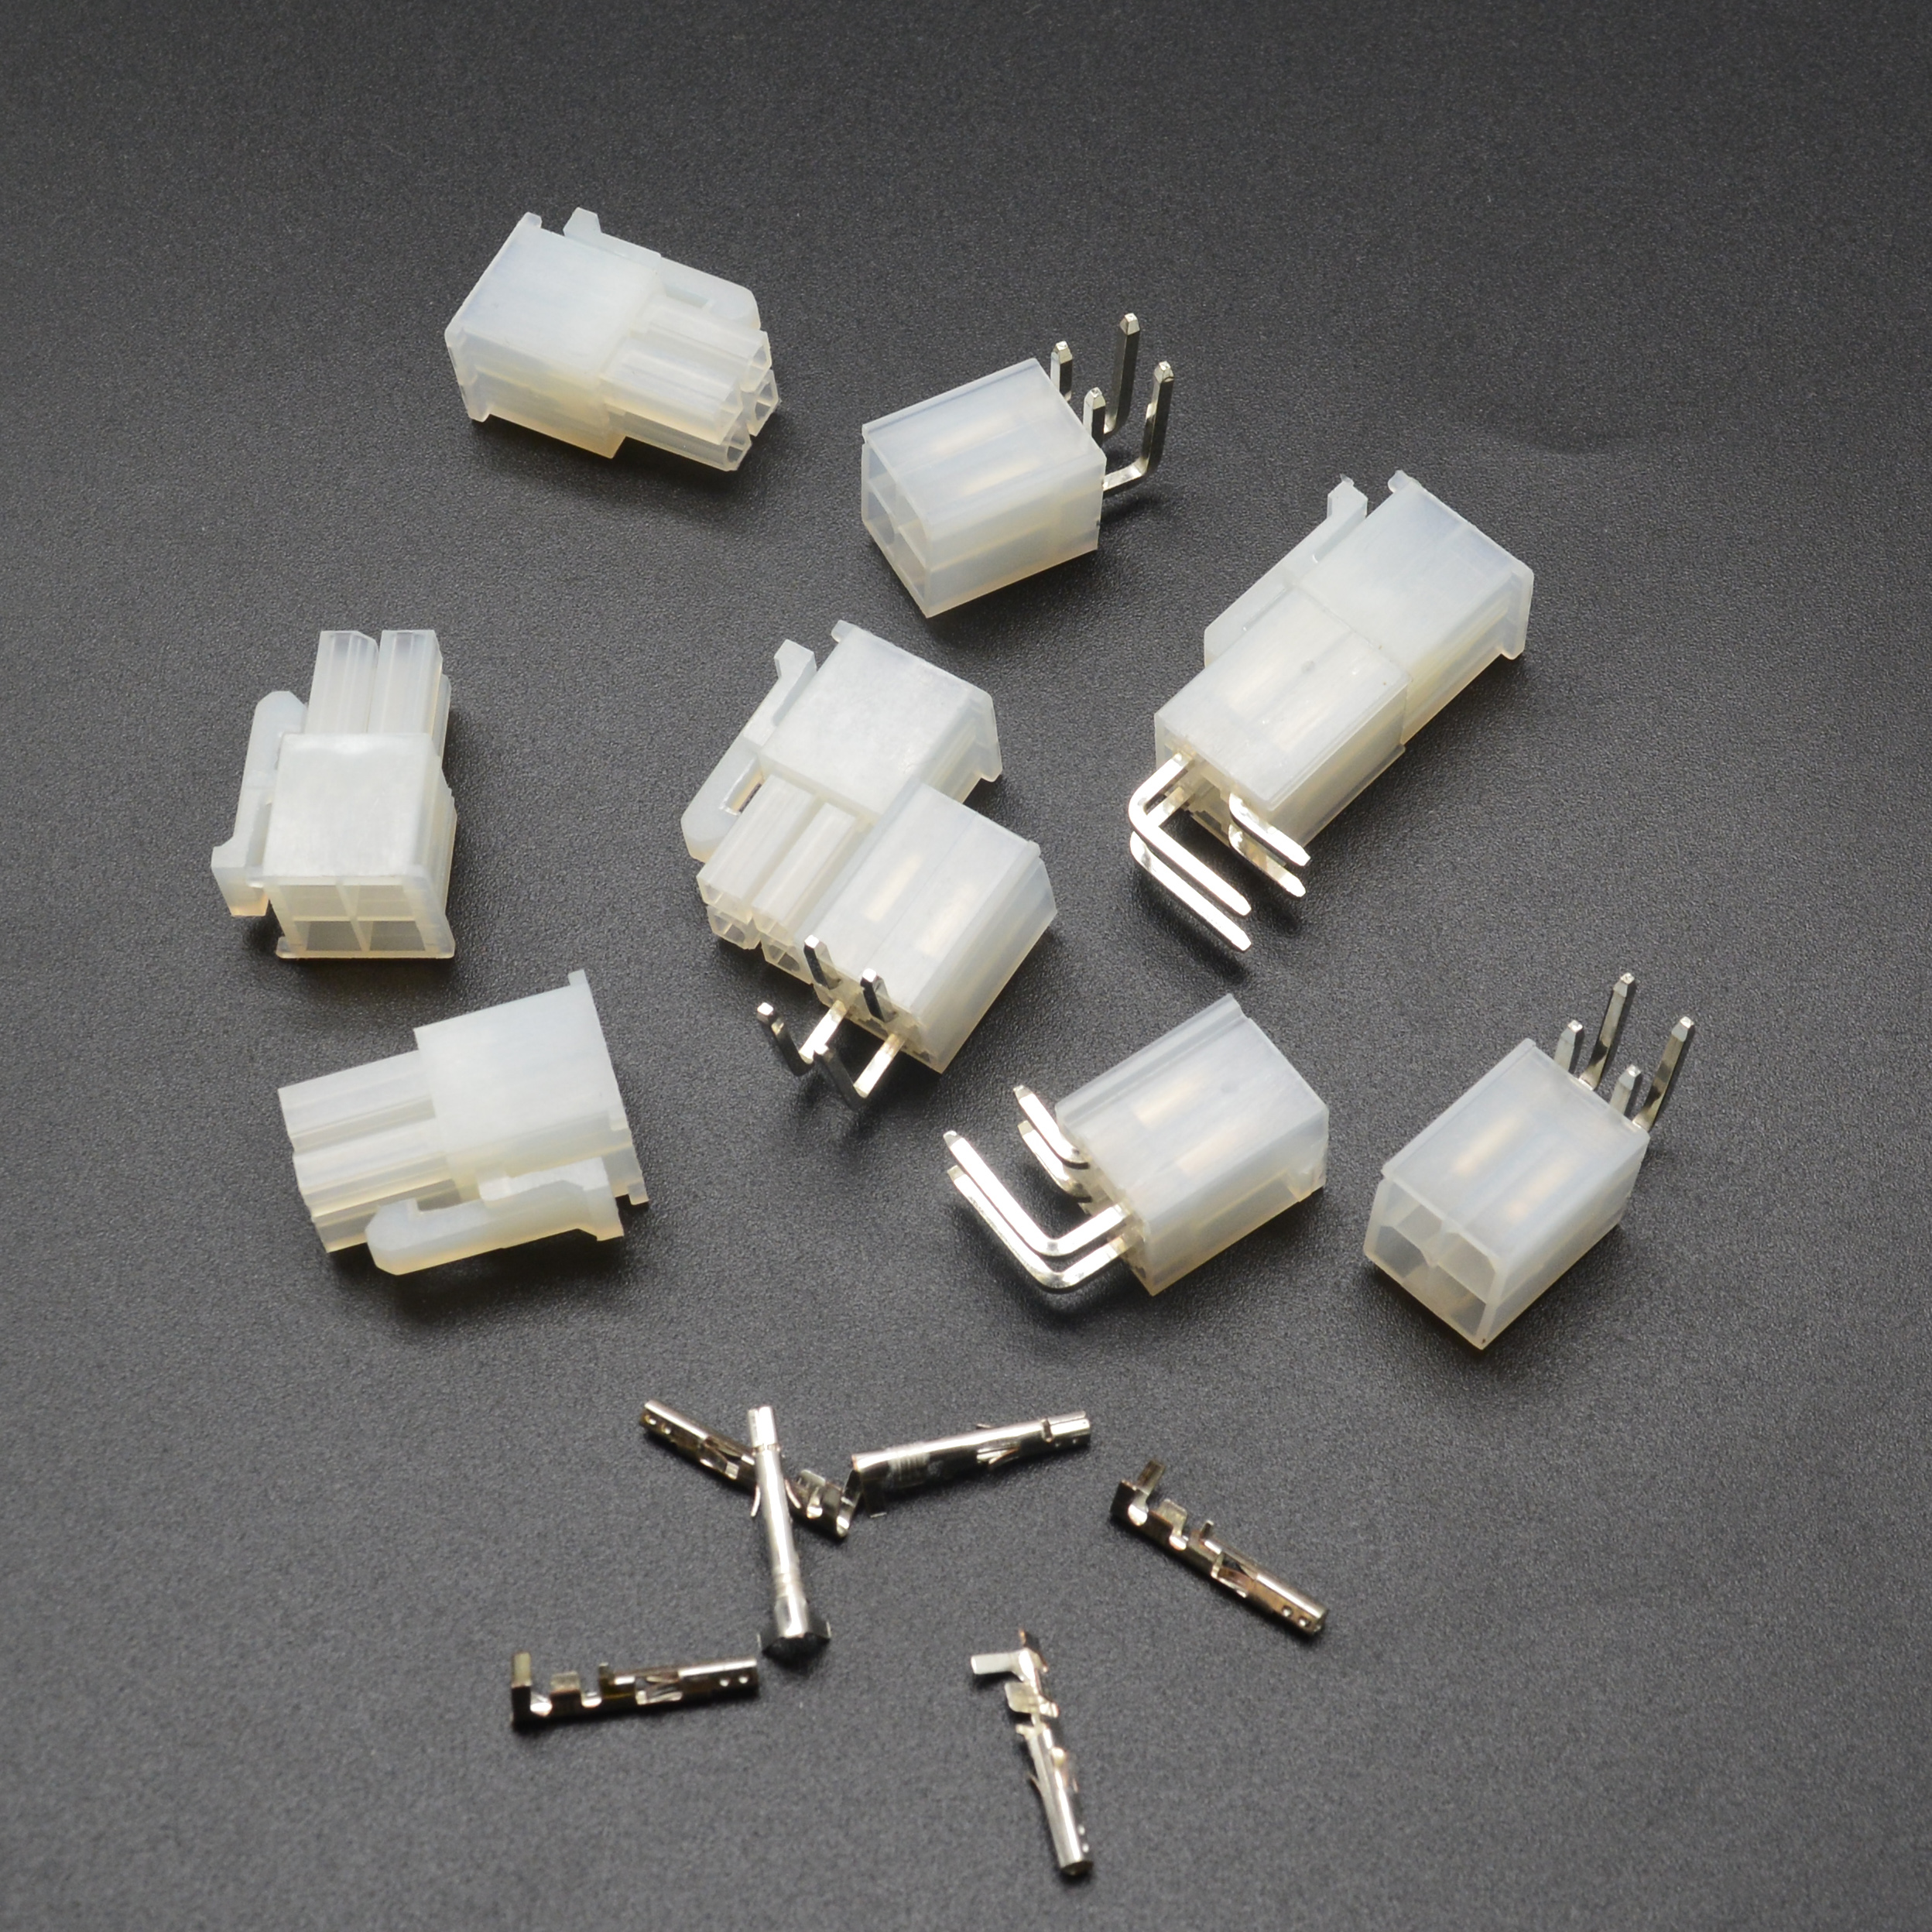 50 sets 4 Pin/way <font><b>4.2mm</b></font> Curved needle <font><b>5557</b></font>&5569 wire terminals electrical connector plug for PCB/CPU/car/motorcycle image